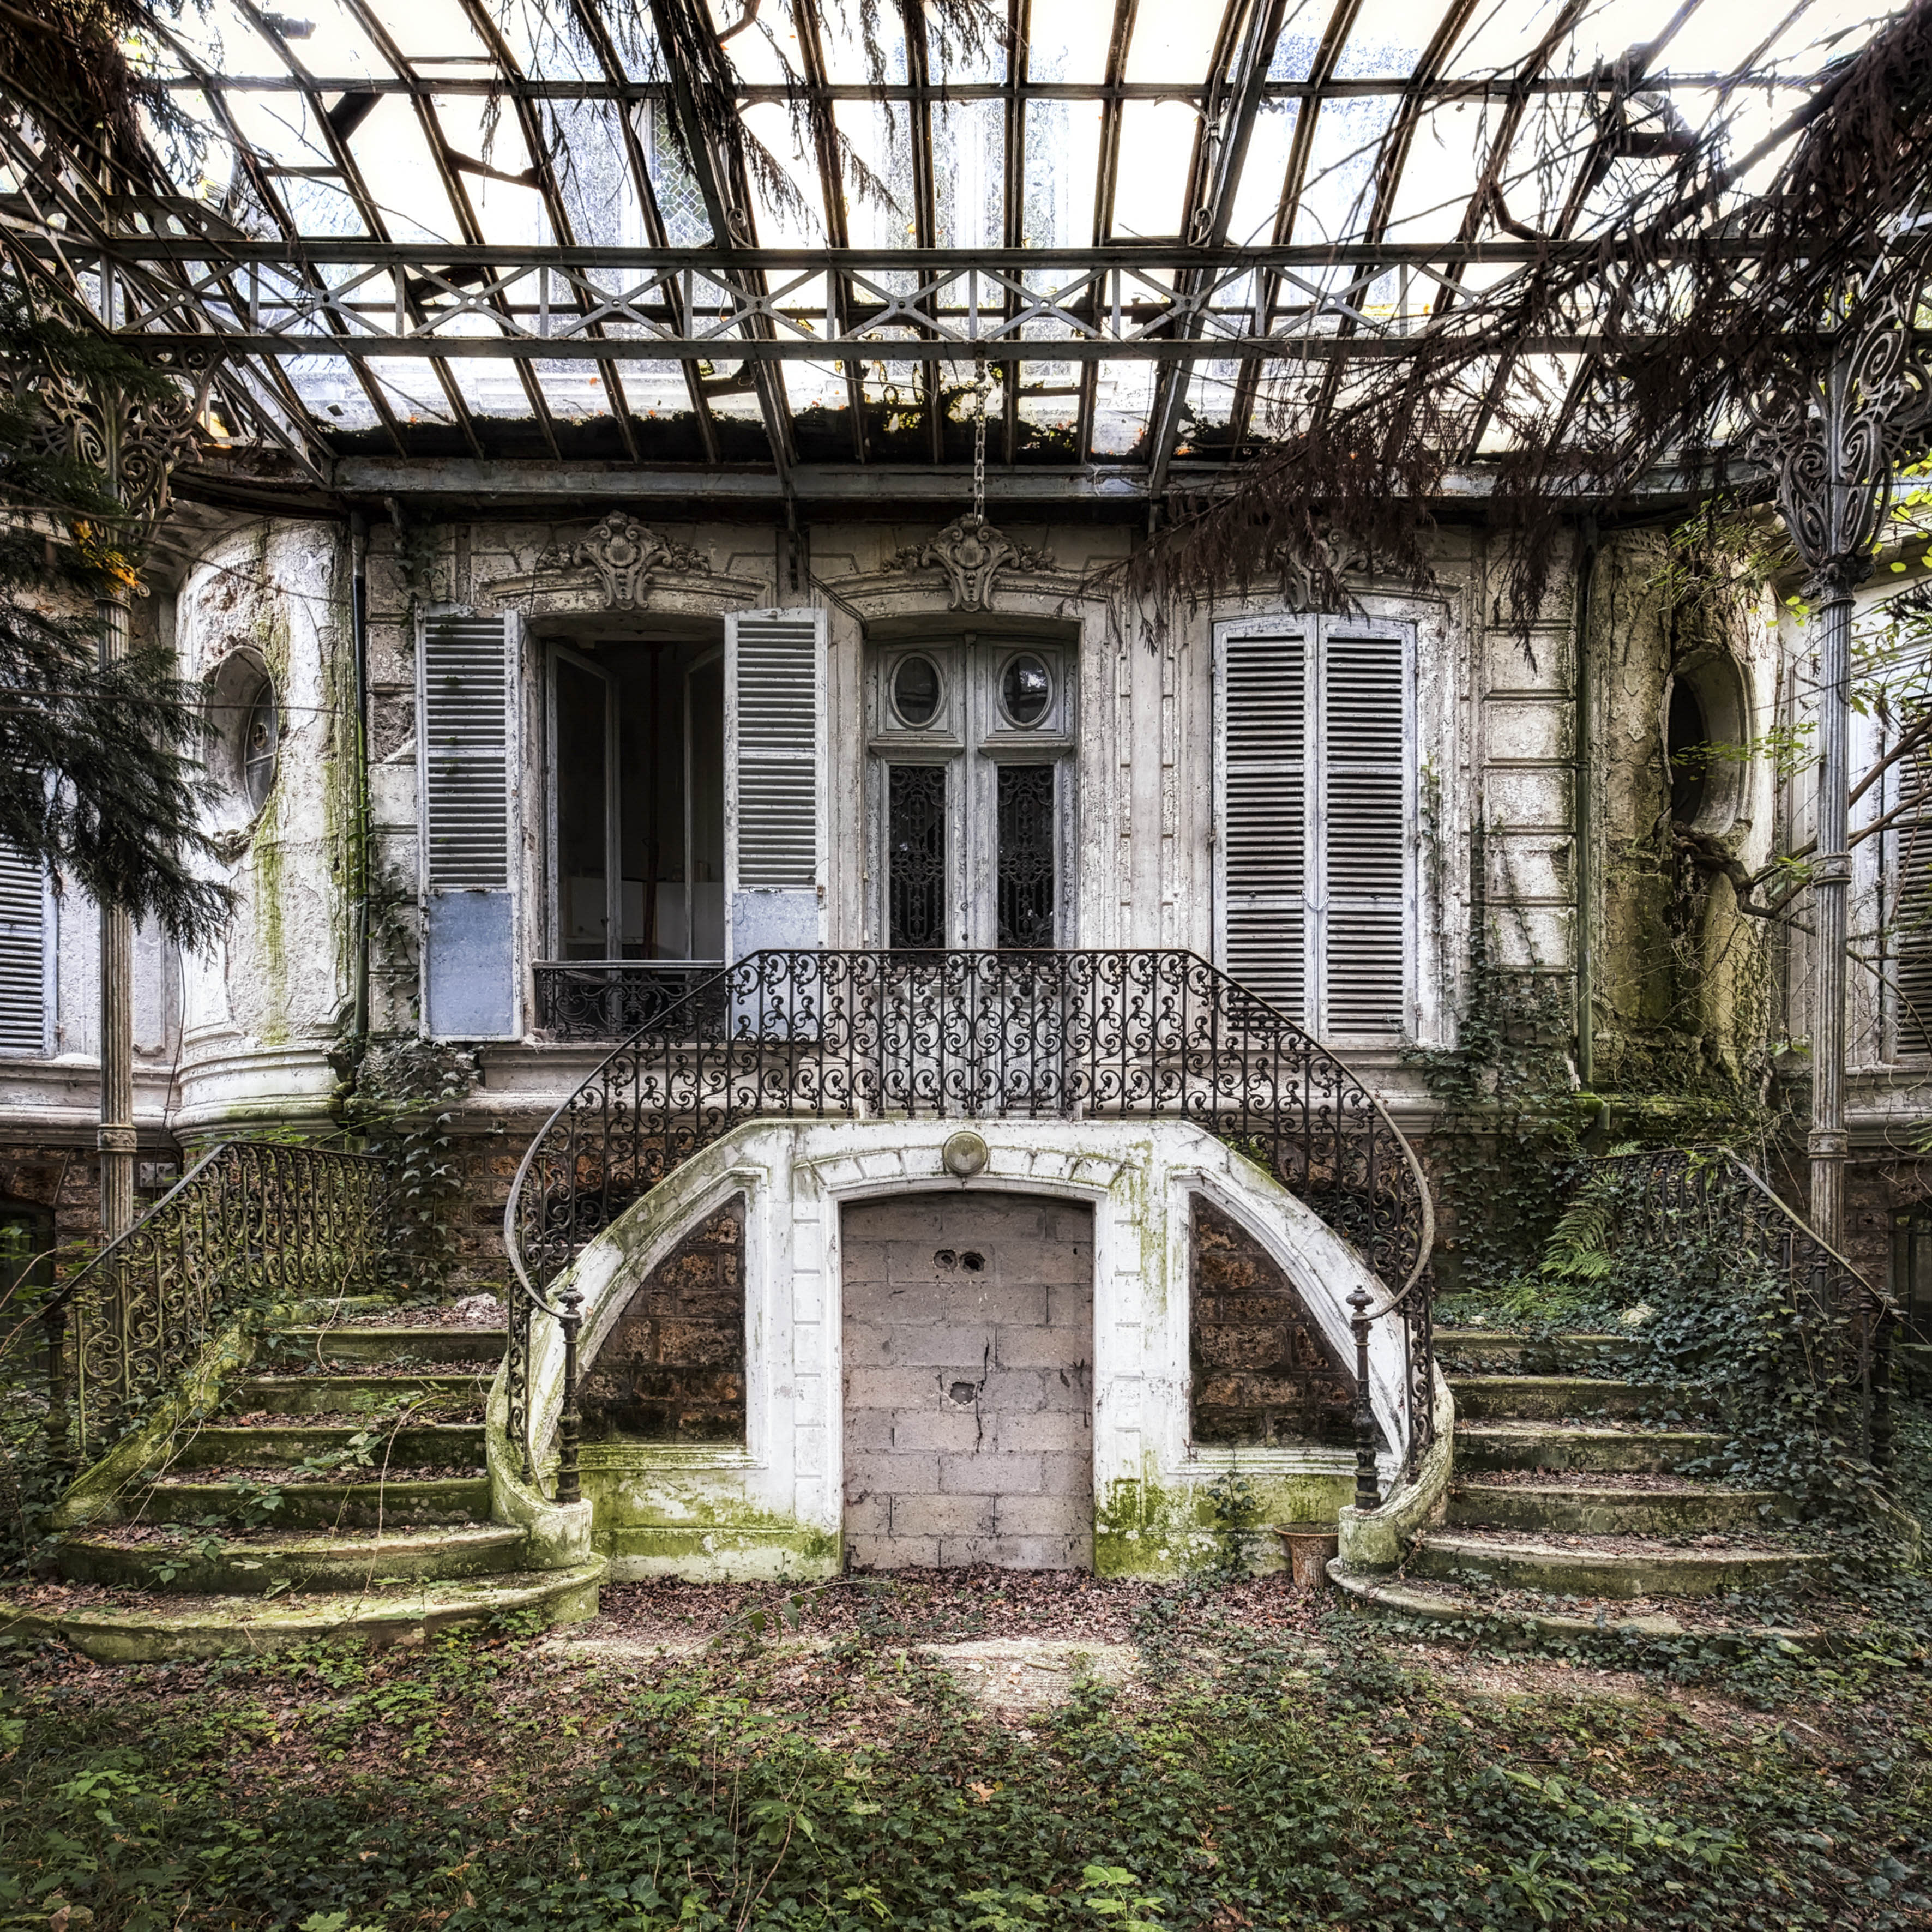 <p>Leaves and ivy take over a veranda in France. (Photo: James Kerwin/Caters News) </p>